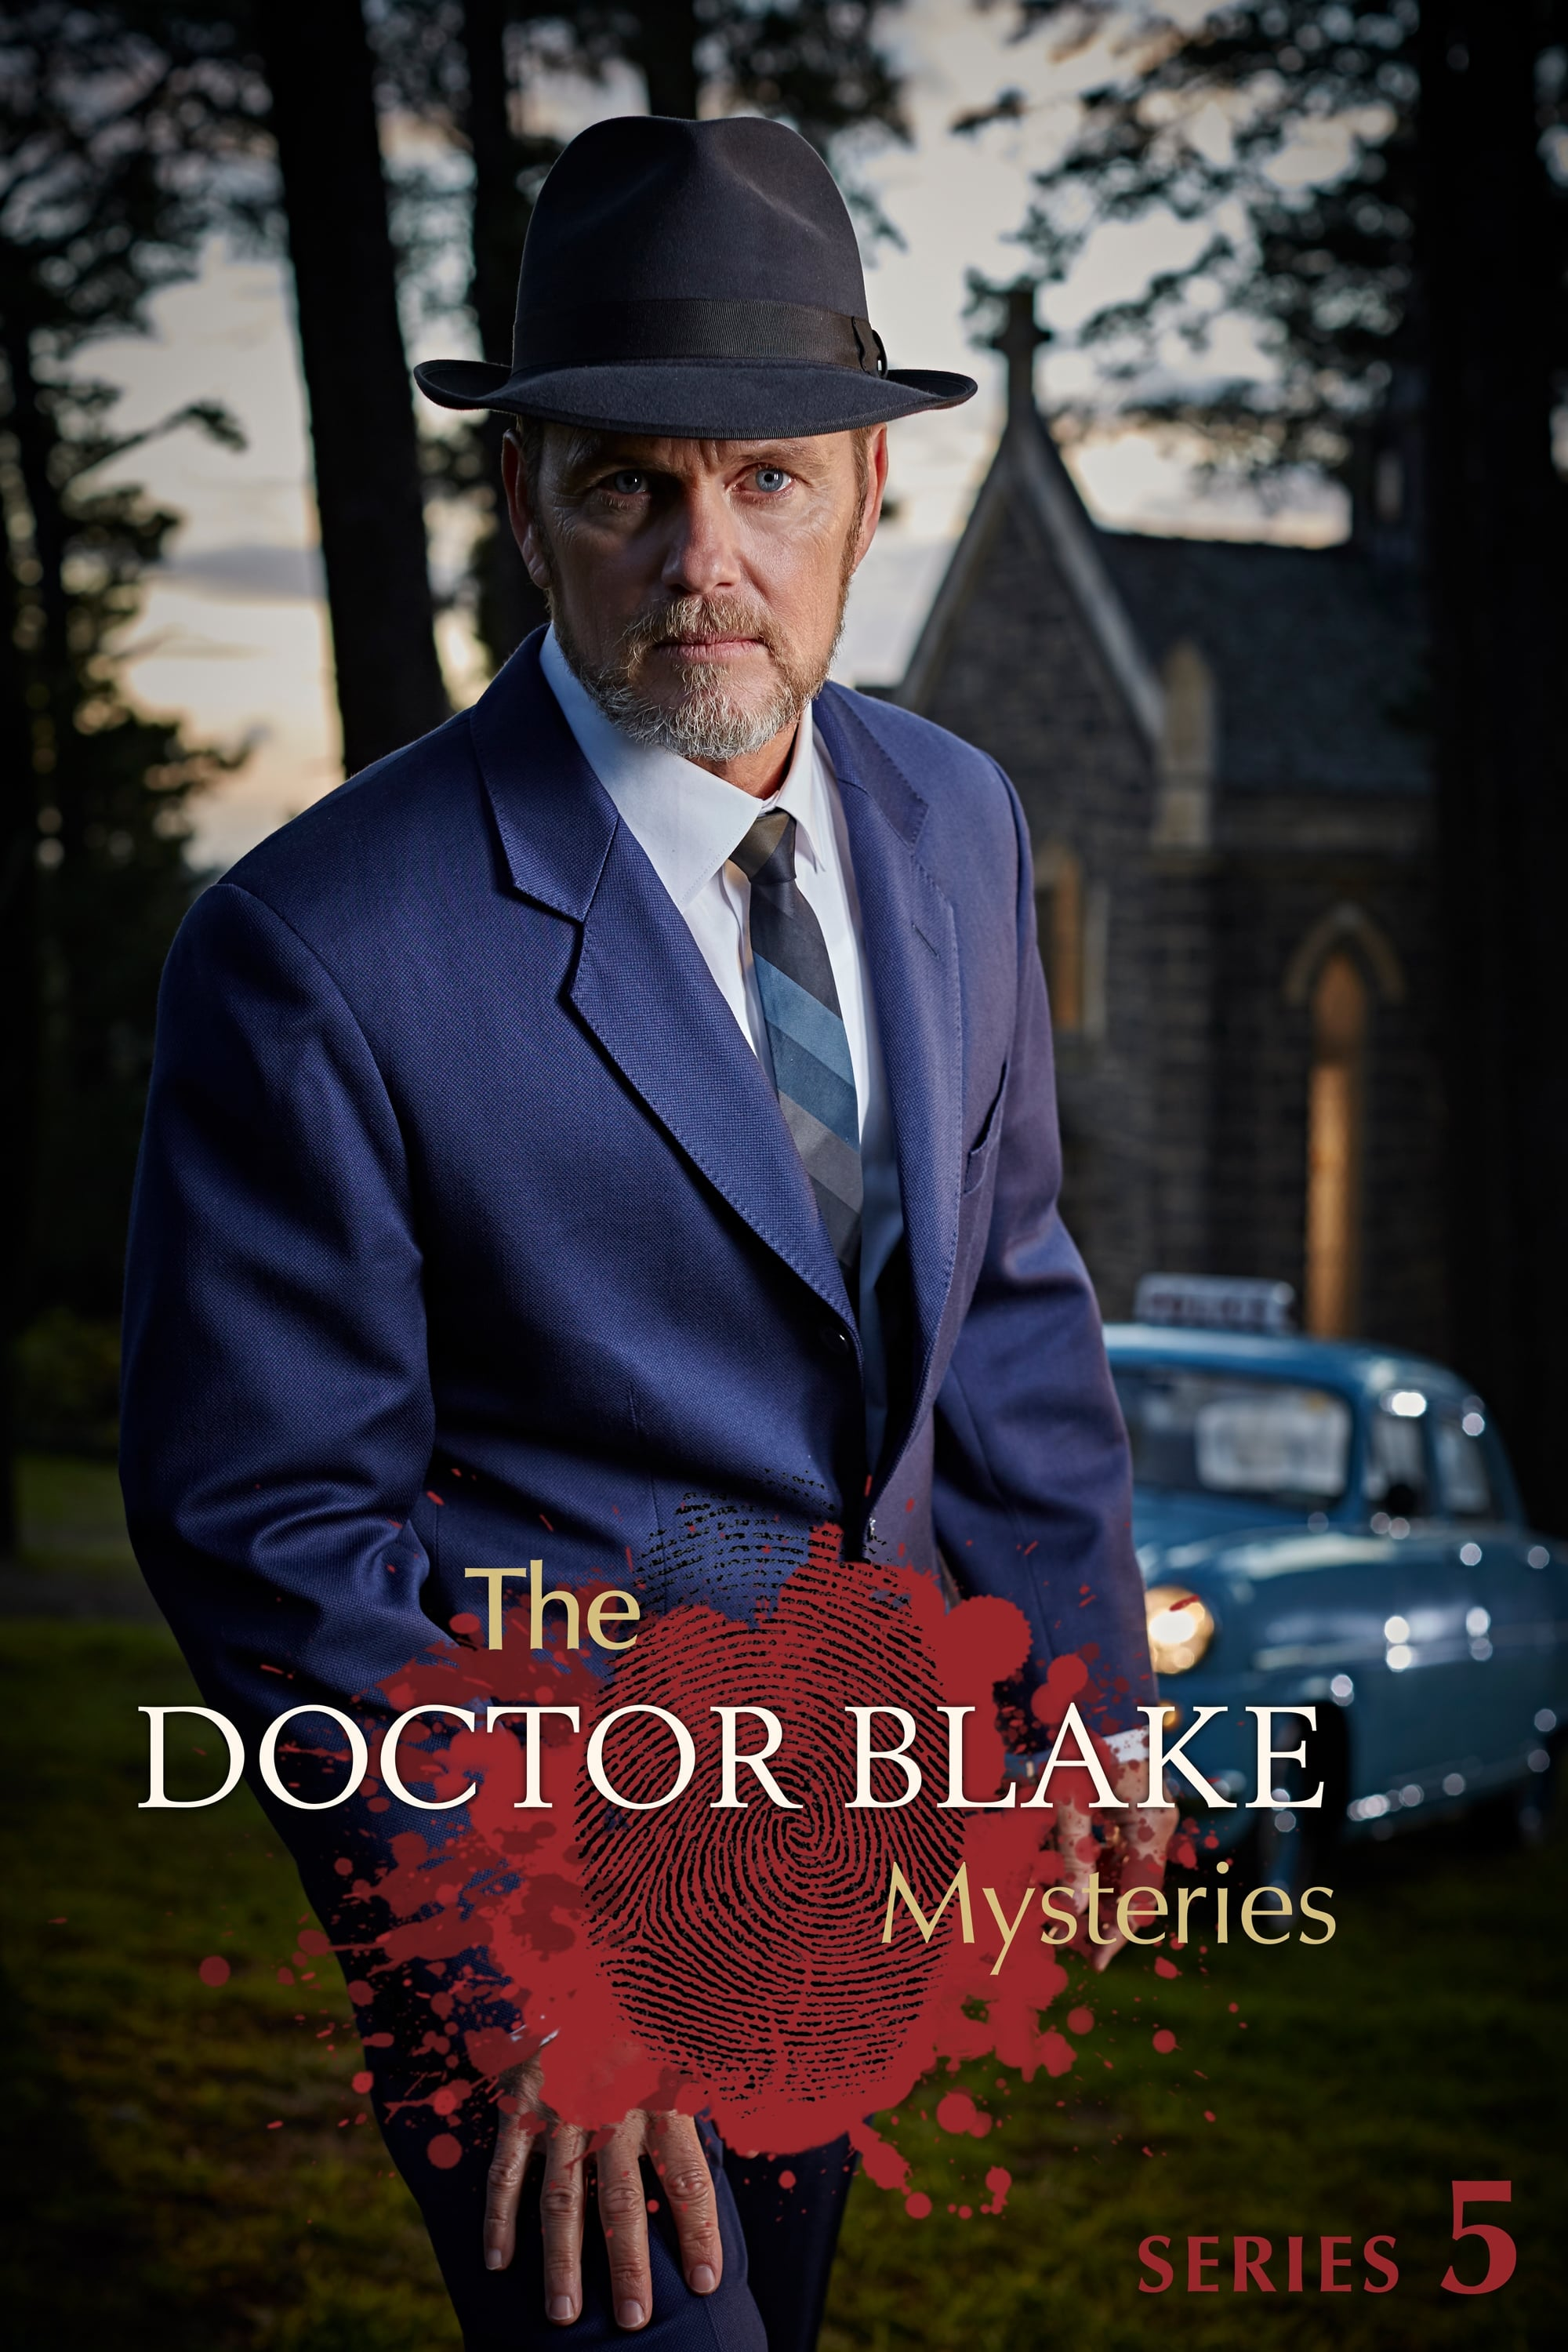 Watch The Doctor Blake Mysteries Series 5 Episode 1 A Lethal Combination Hd Free Tv Show